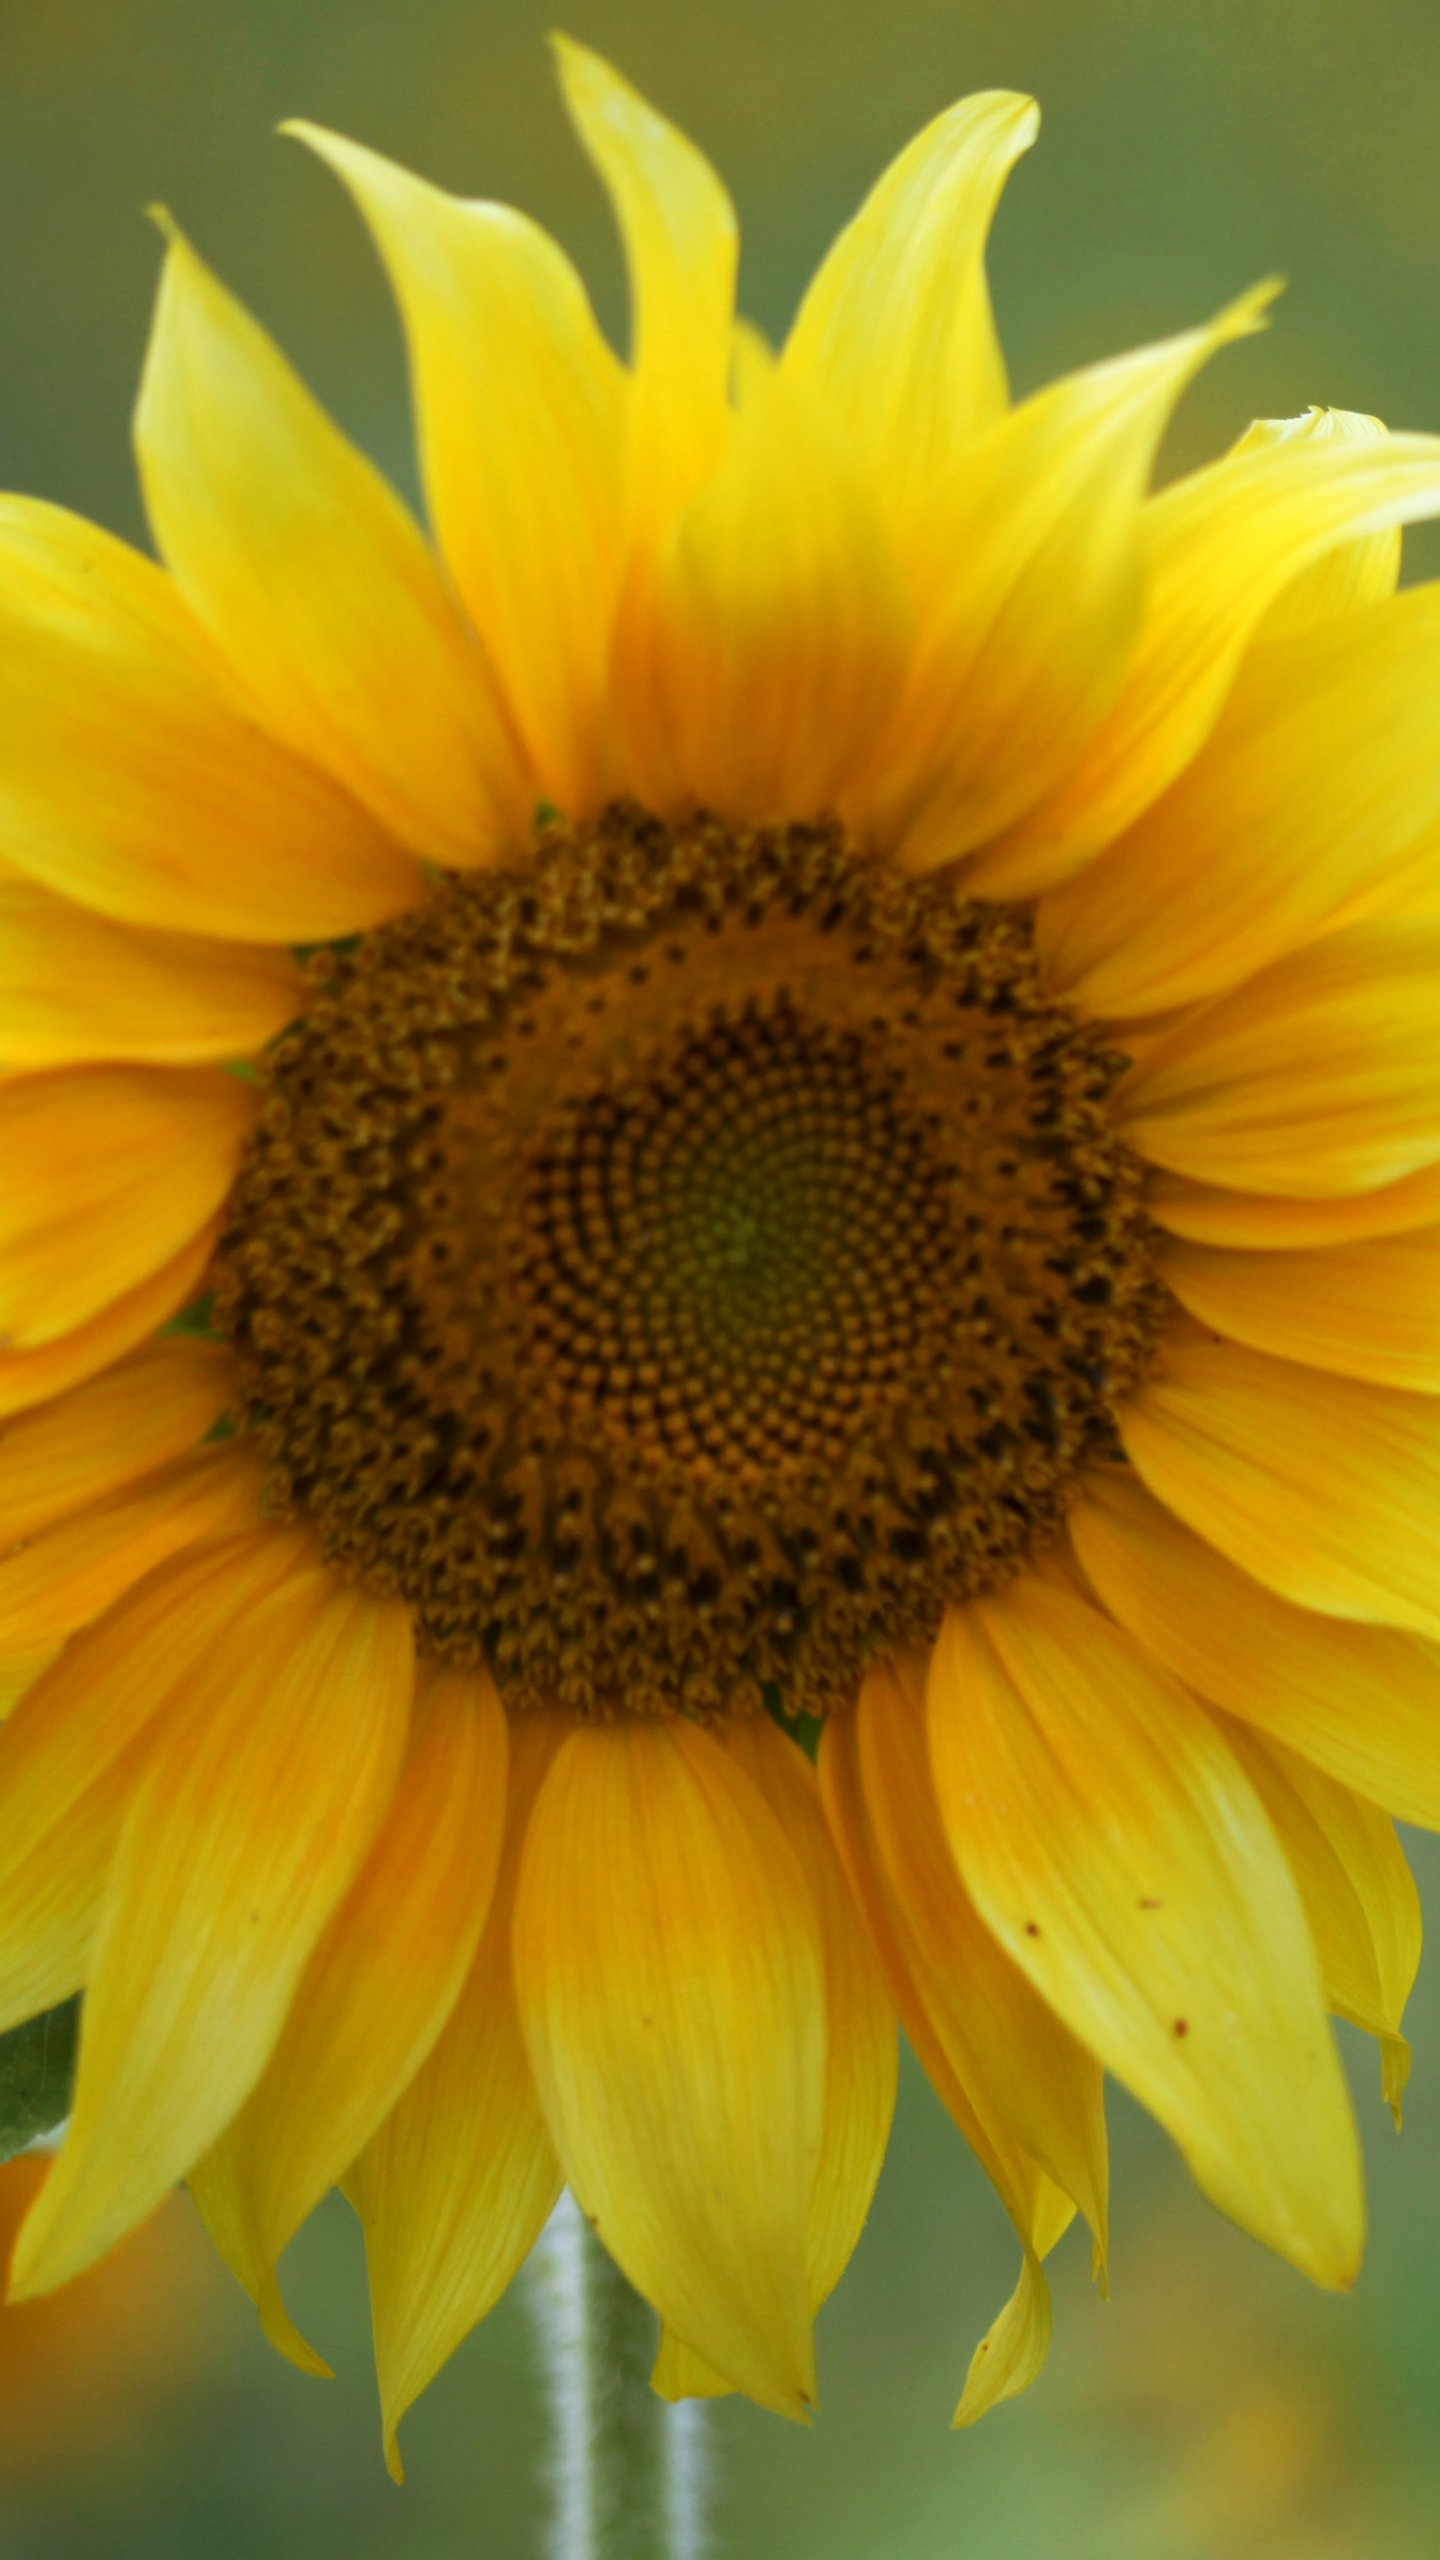 Sunflower Wallpaper - iPhone, Android